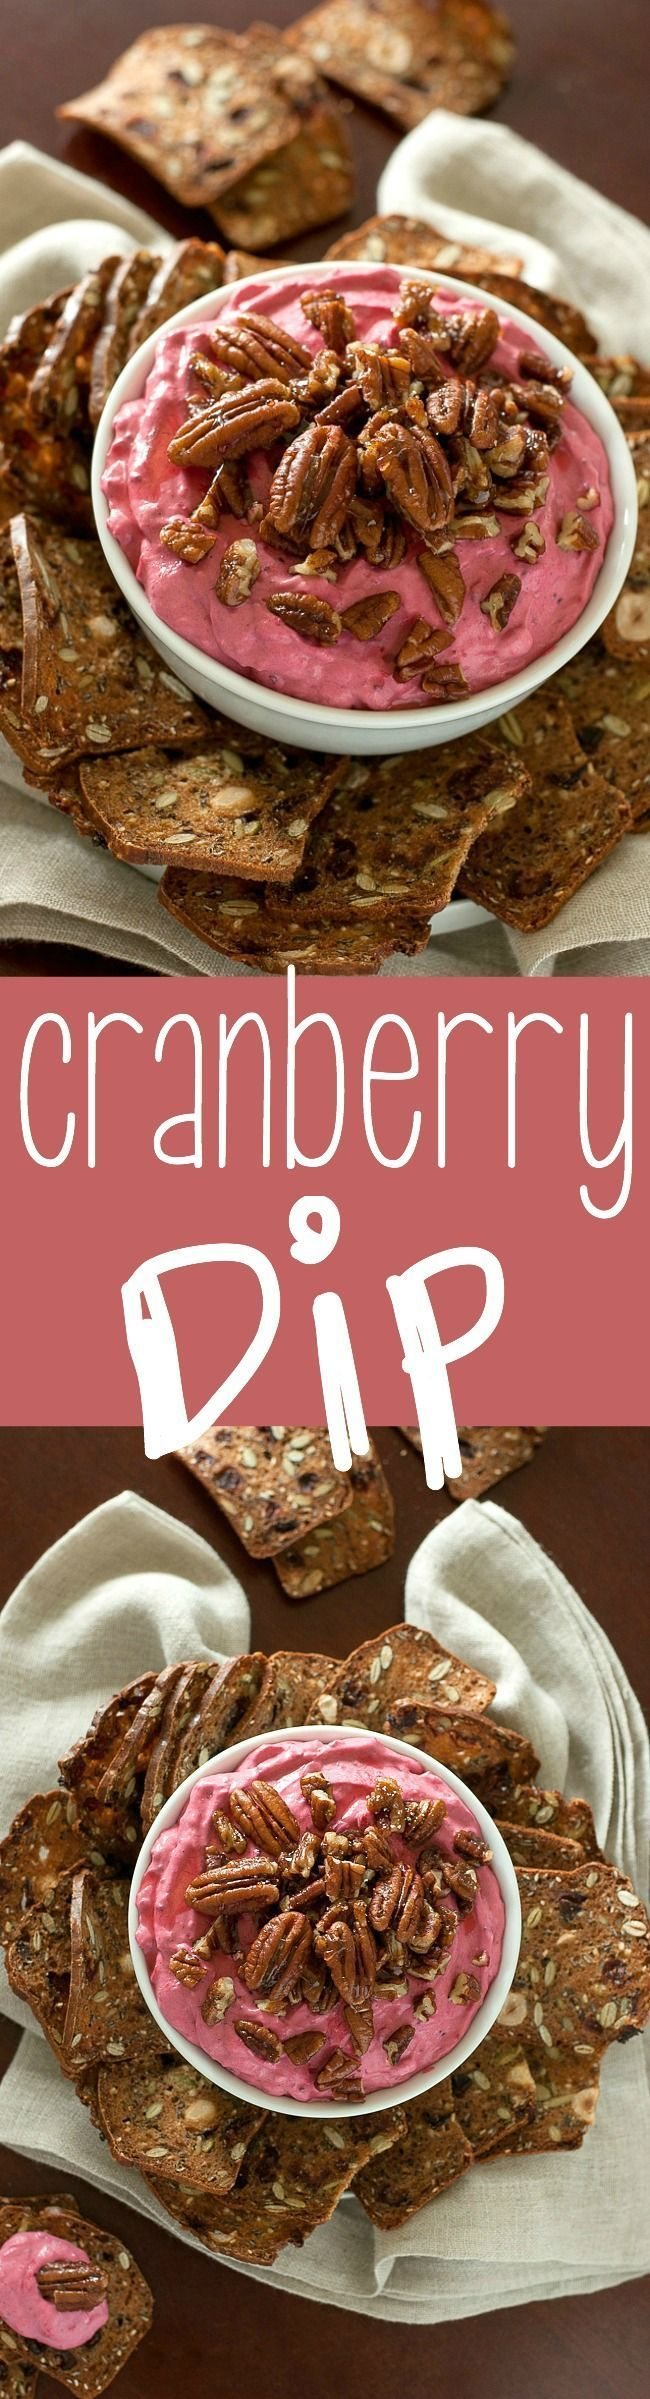 This fun and festive cranberry dip is swirled with cream cheese and honey and topped with the most delicious candied pecans. Perfect for the holidays!